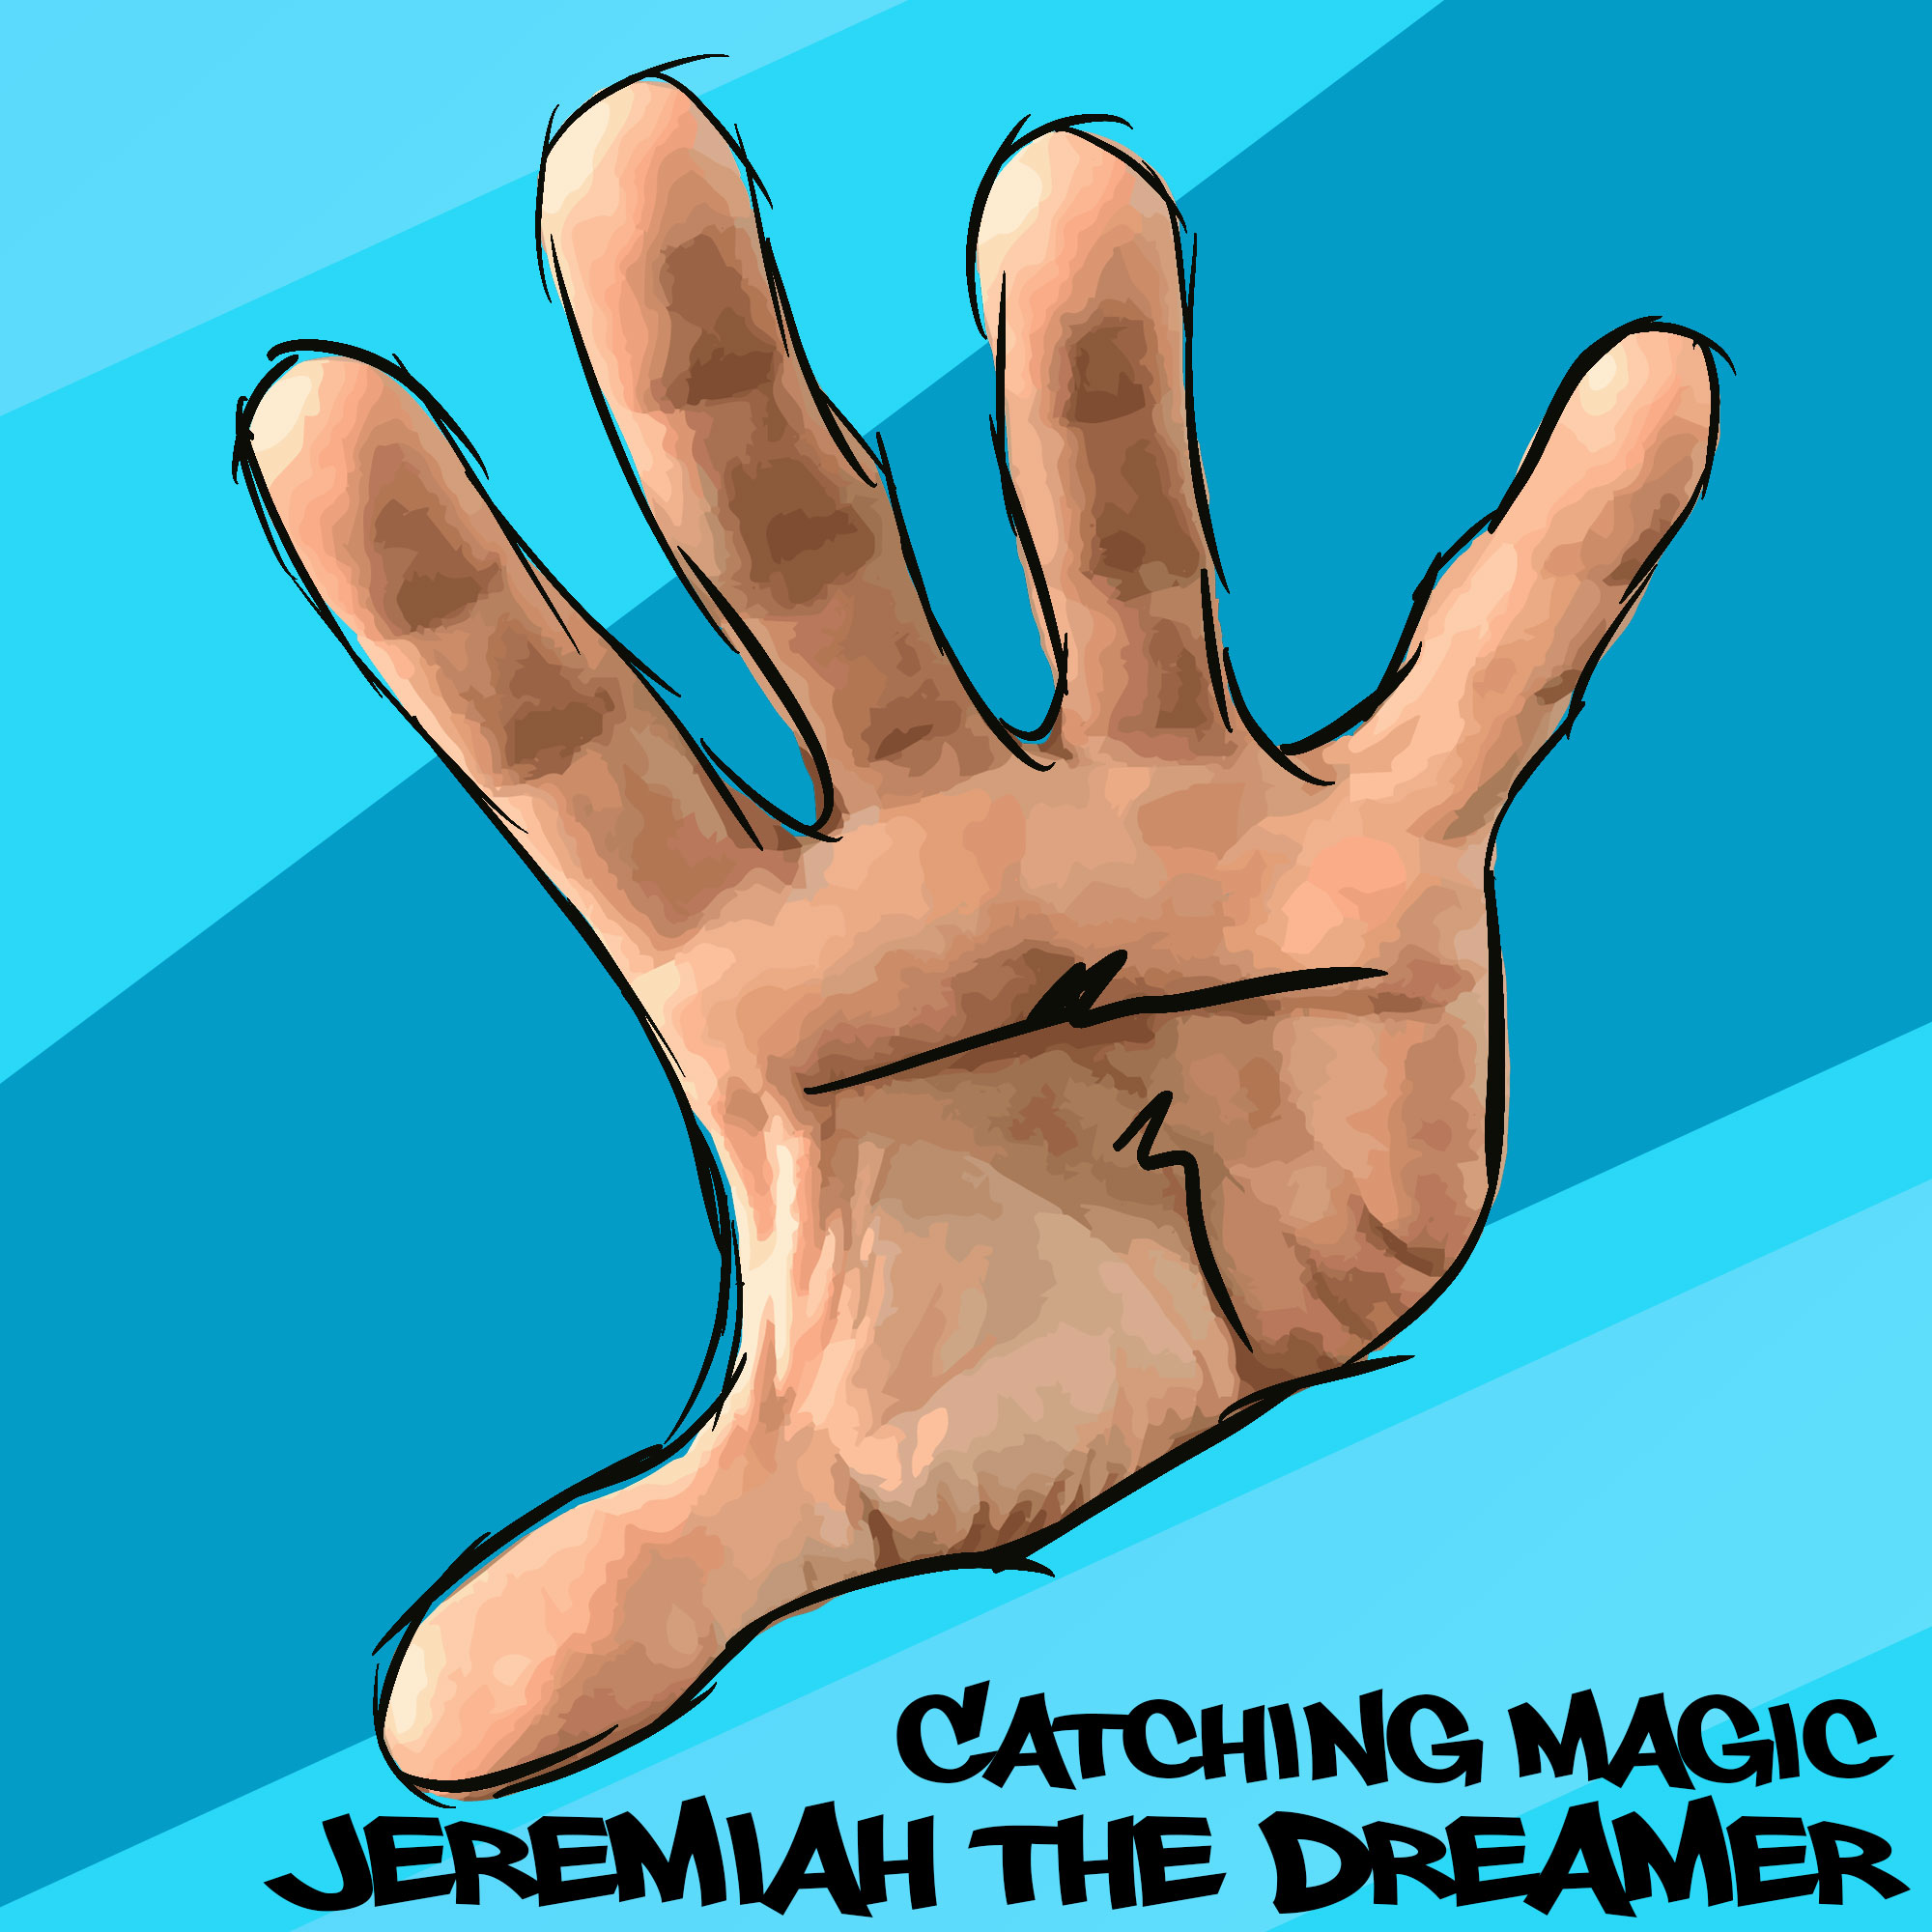 Catching Magic by Jeremiah the Dreamer